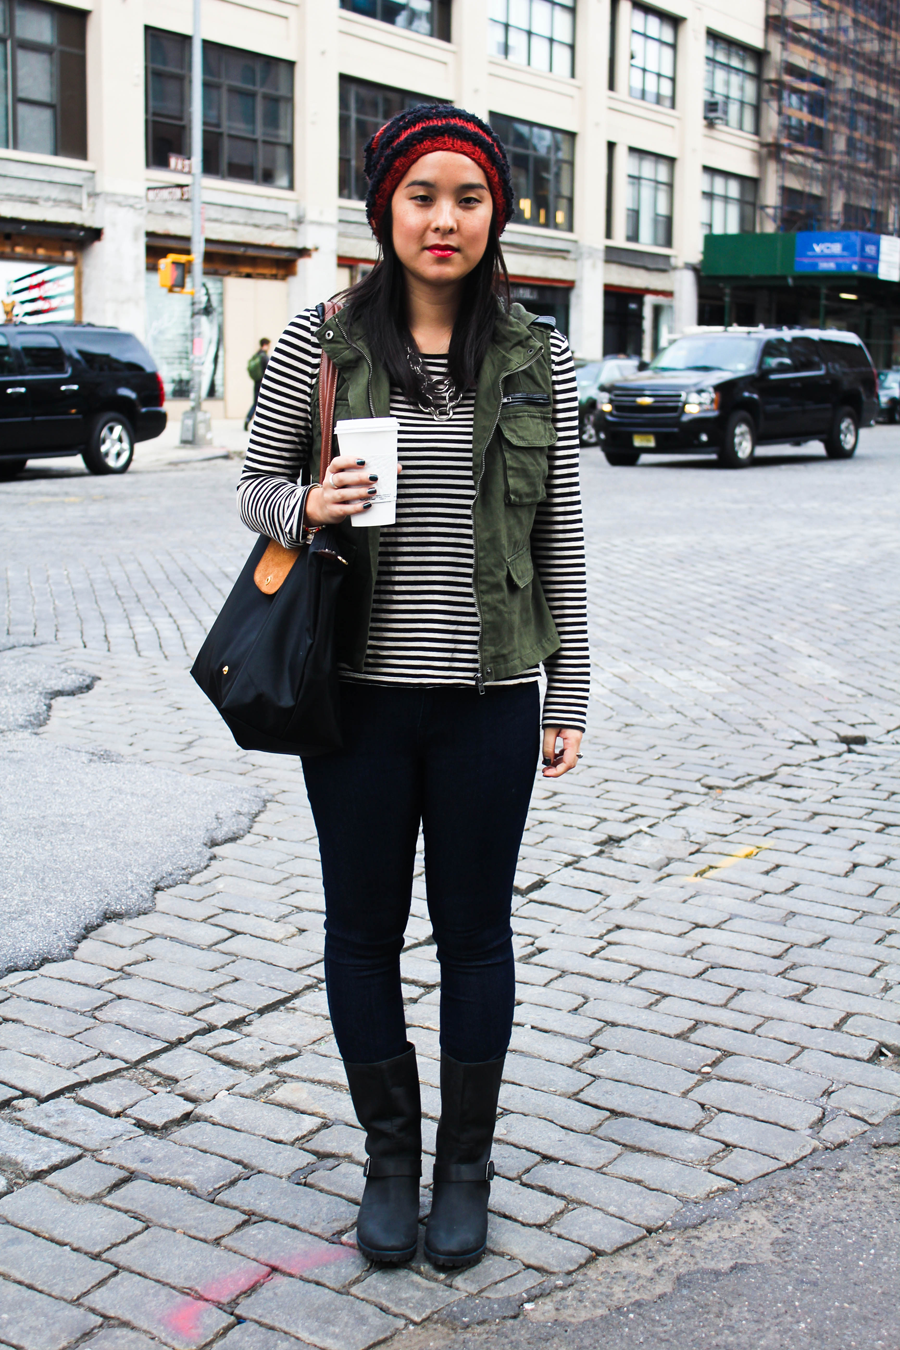 Fall Street Style | Striped Long Sleeve, Military Vest and Black Boots | Th